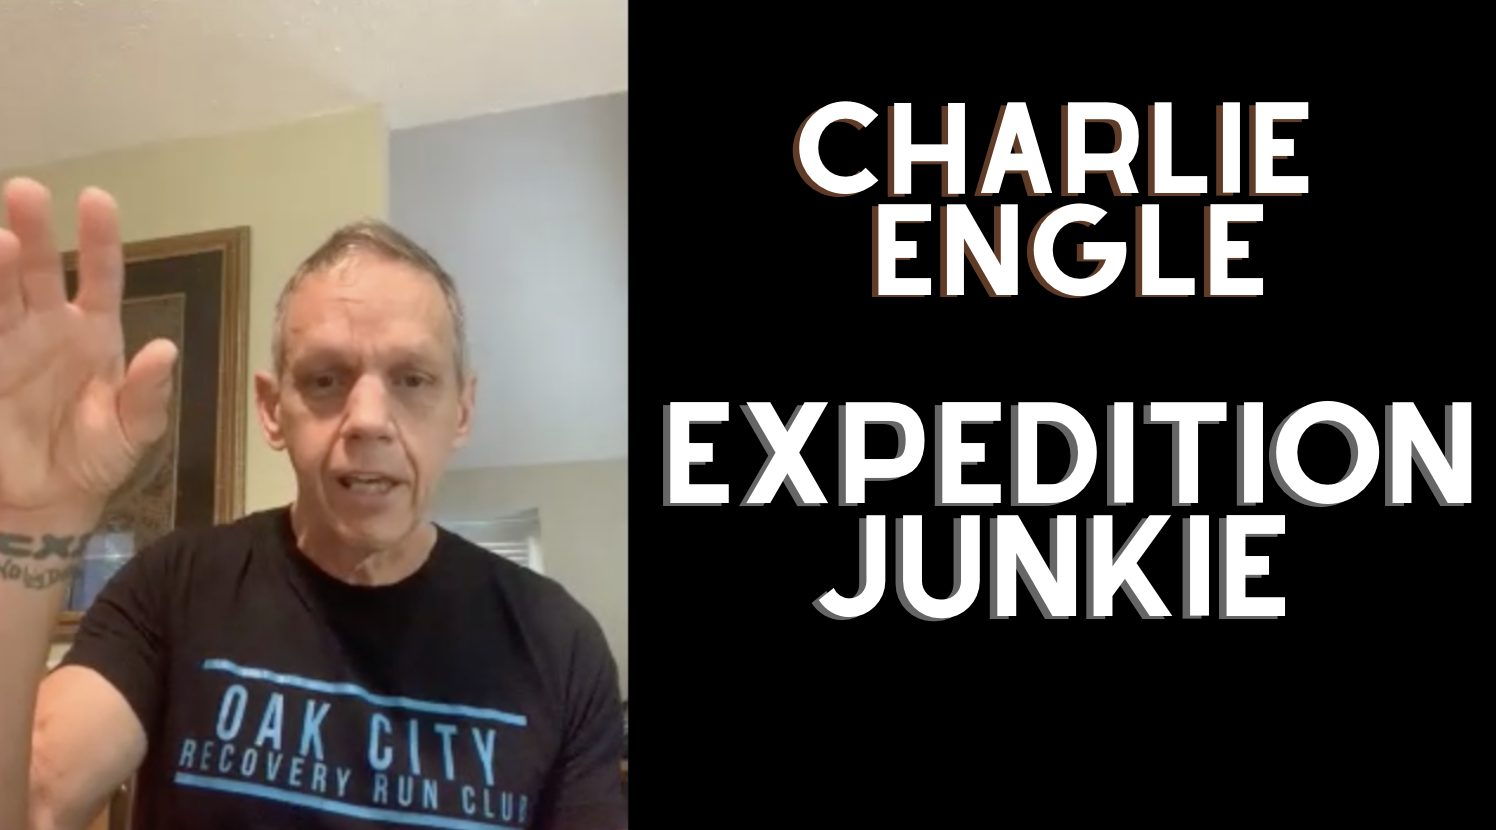 Charlie Engle Expedition Junkie